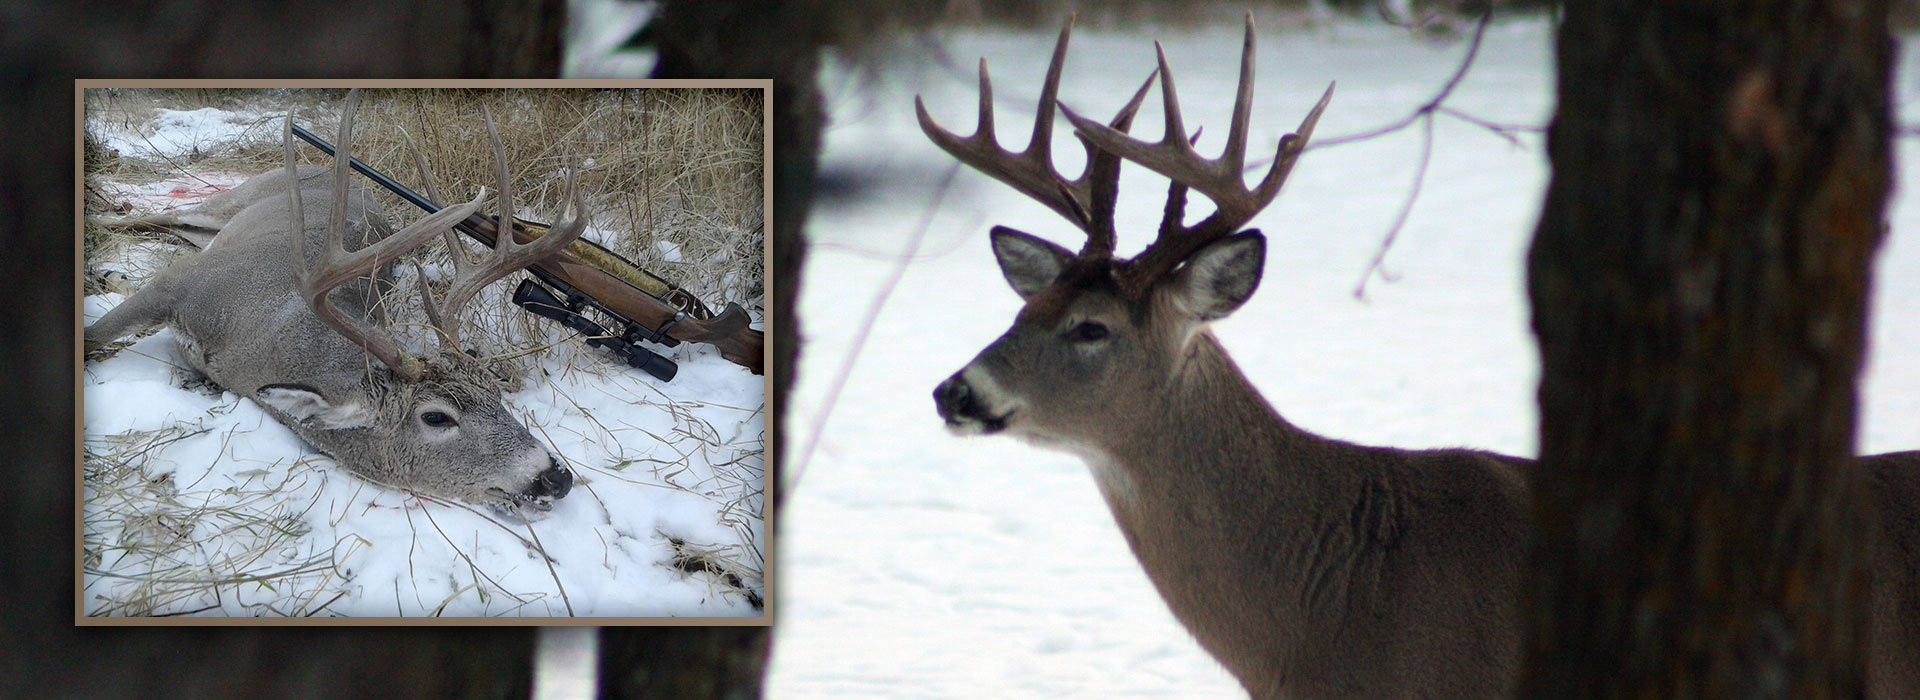 clearwater-county-whitetail-hunts--1597077601858162140